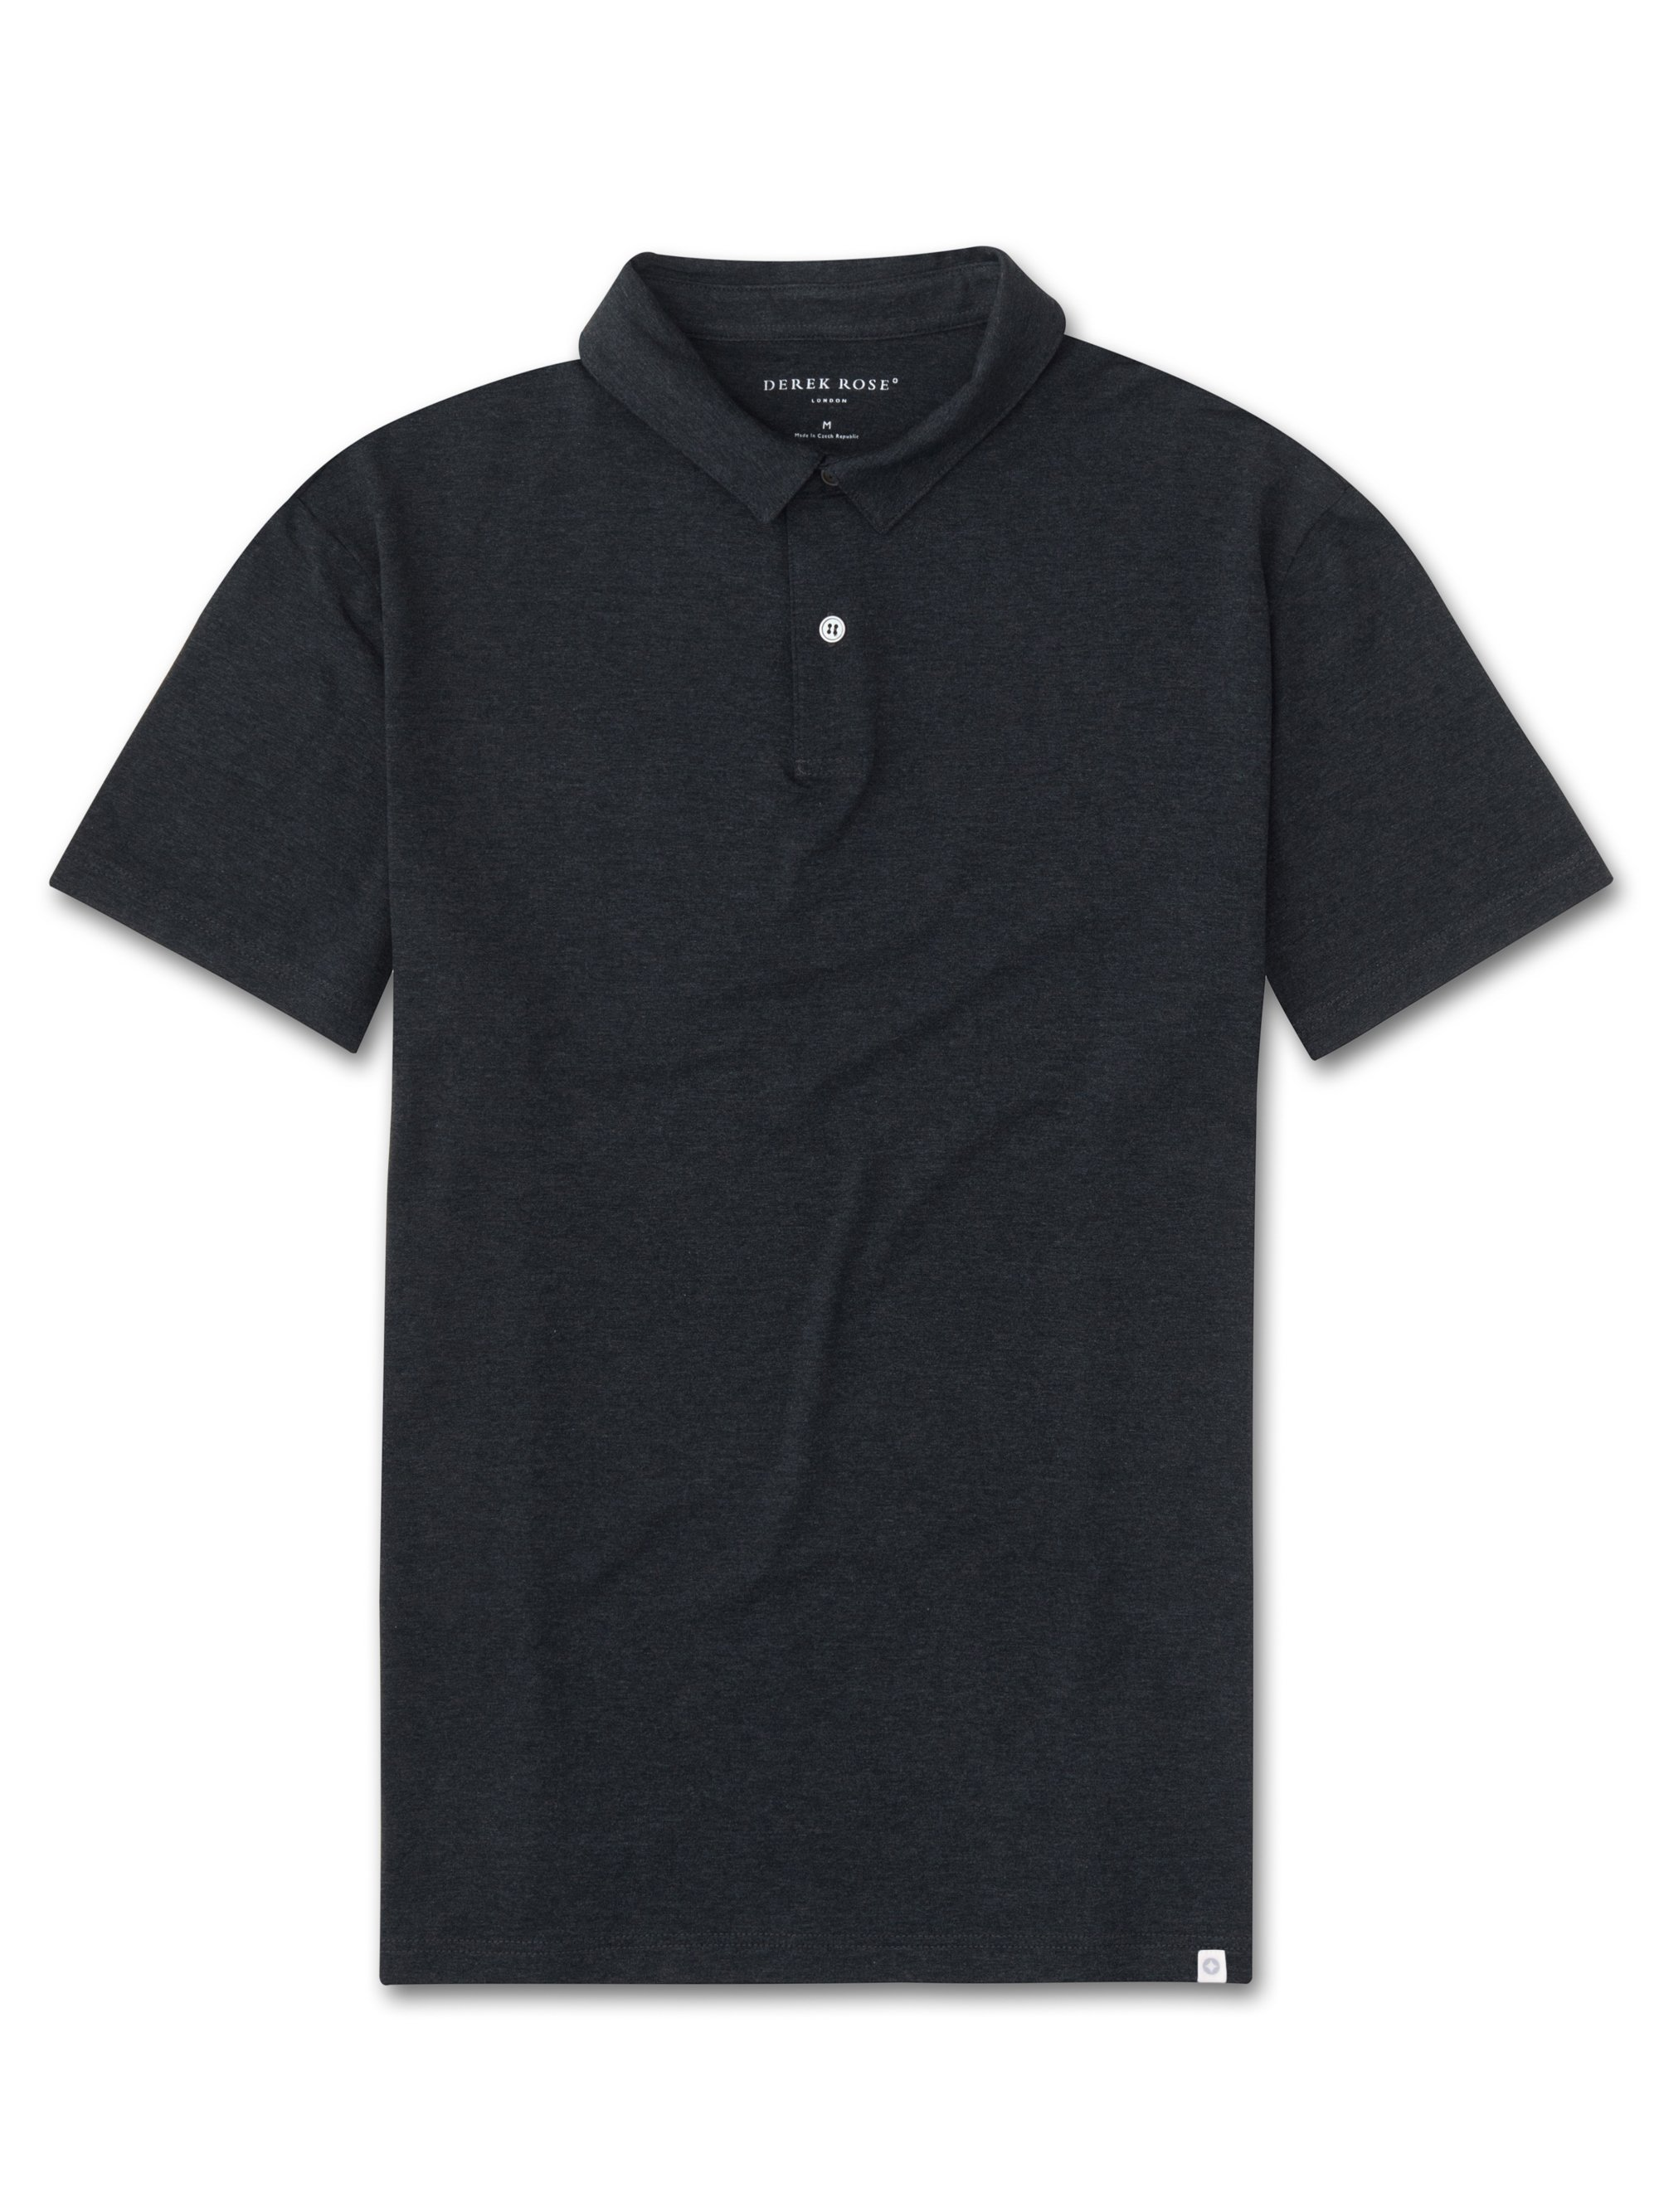 Men's Short Sleeve Polo Shirt Marlowe Micro Modal Stretch Anthracite